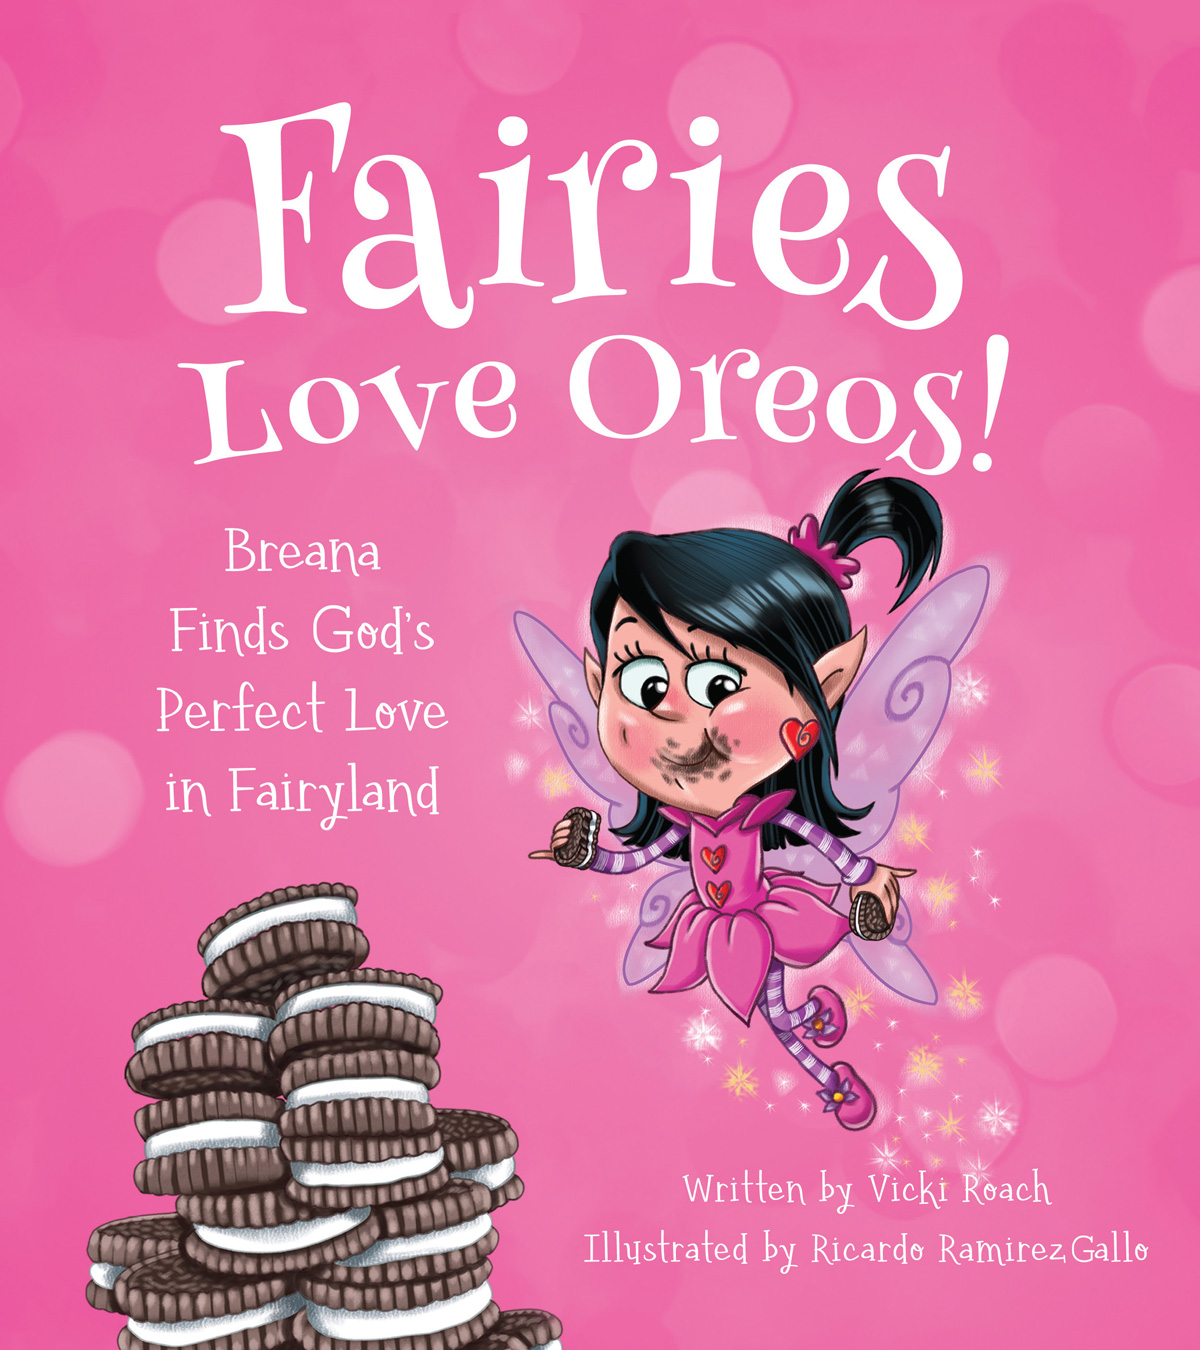 Fairies Love Oreos!